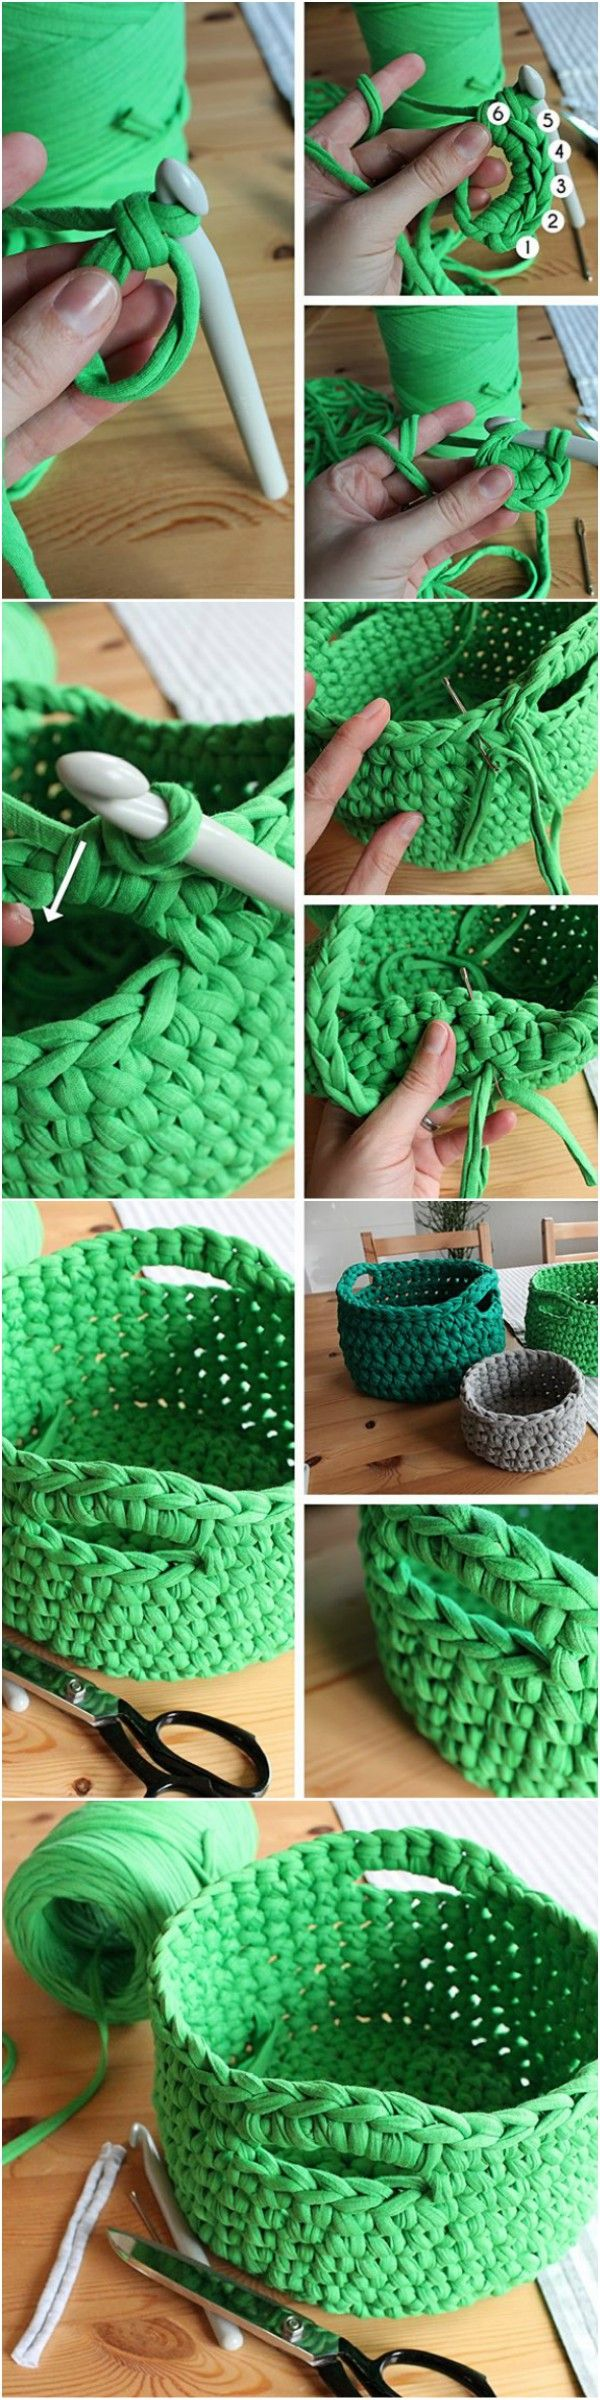 Upcycle an old t-short into this stylish basket!